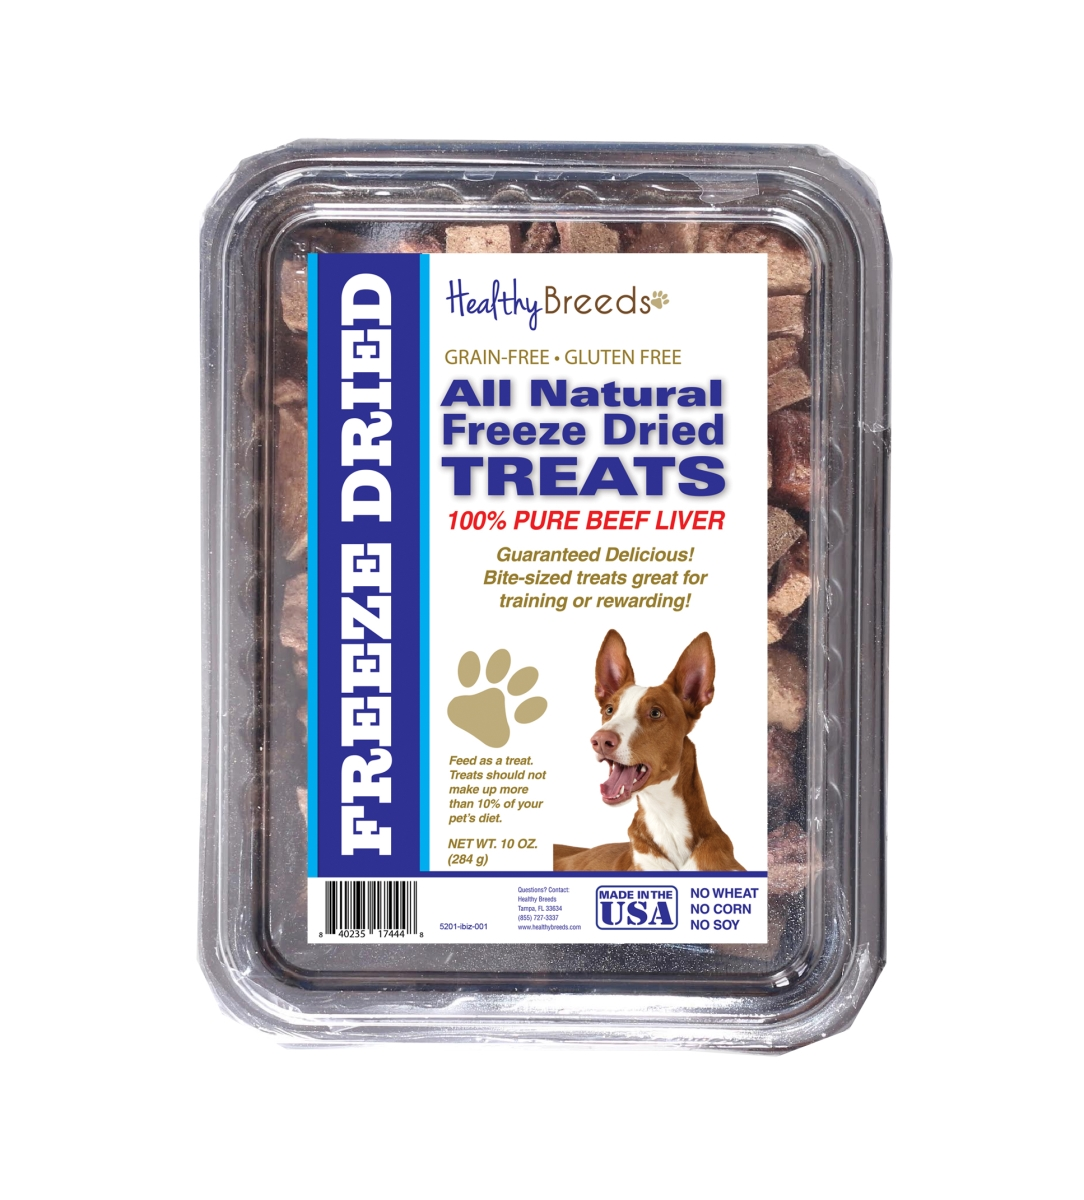 Healthy Breeds 840235174448 10 oz Ibizan Hound All Natural Freeze Dried Treats Beef Liver